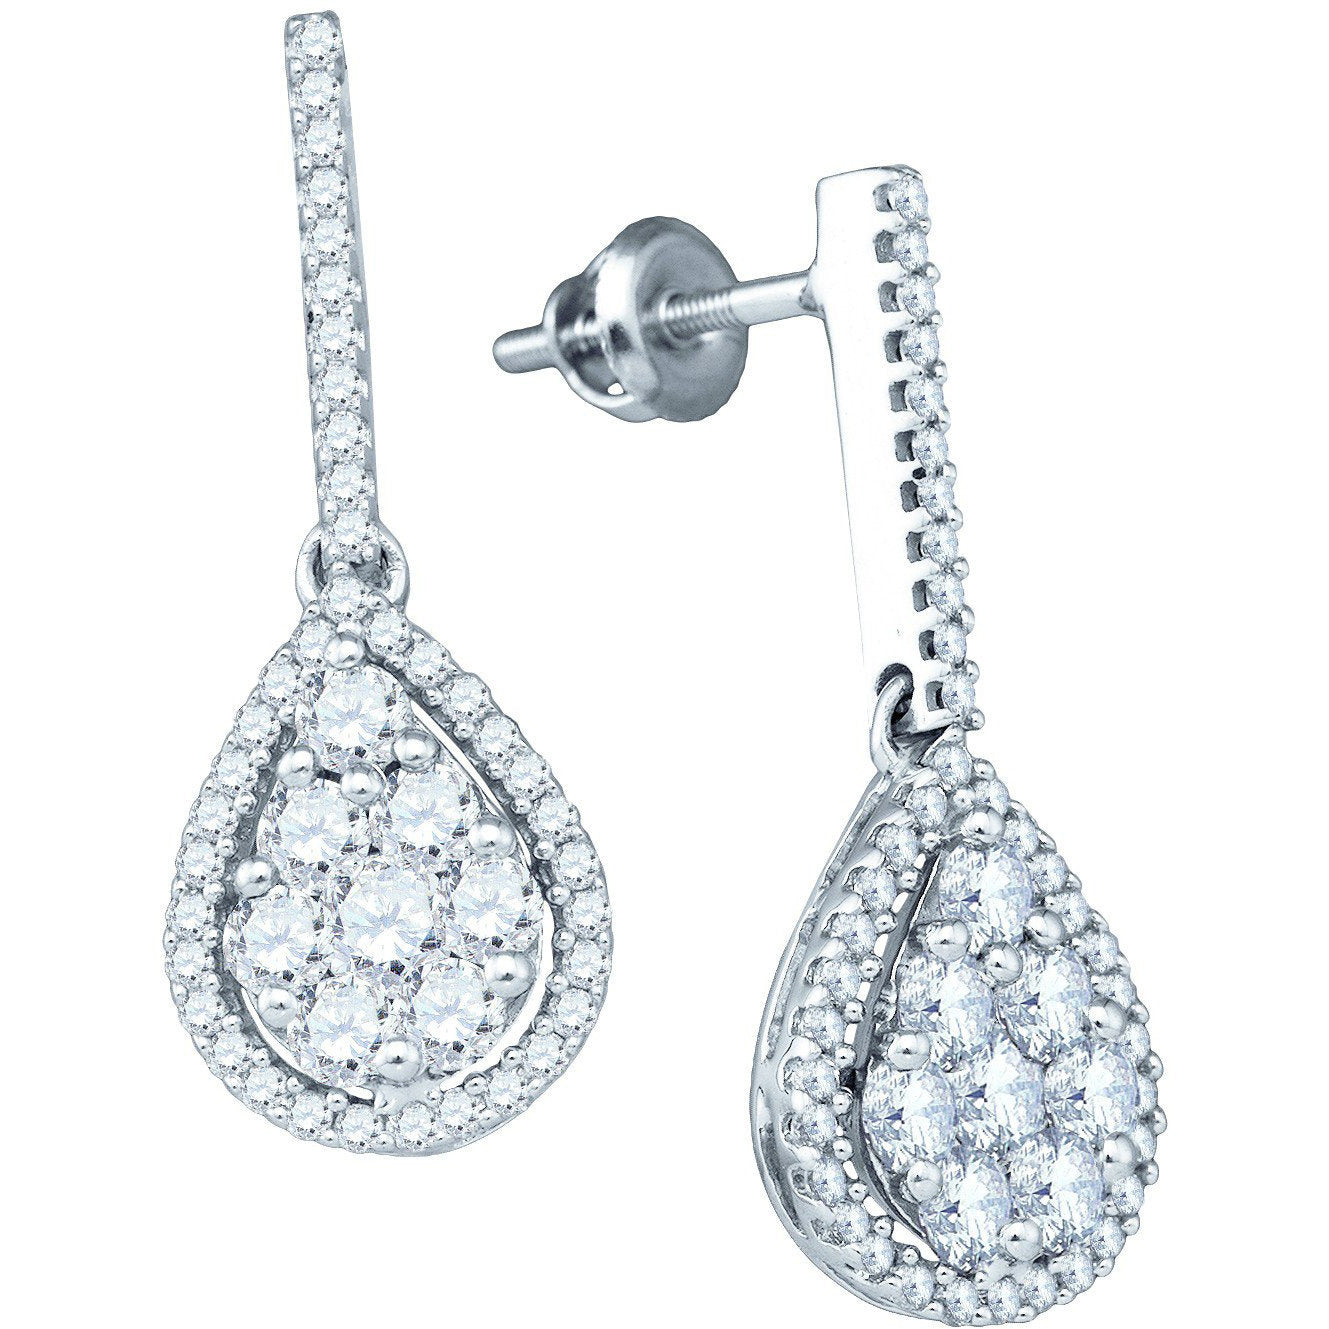 10kt White Gold Womens Round Diamond Dangle Screwback Earrings 1-1/2 Cttw 71975 - shirin-diamonds